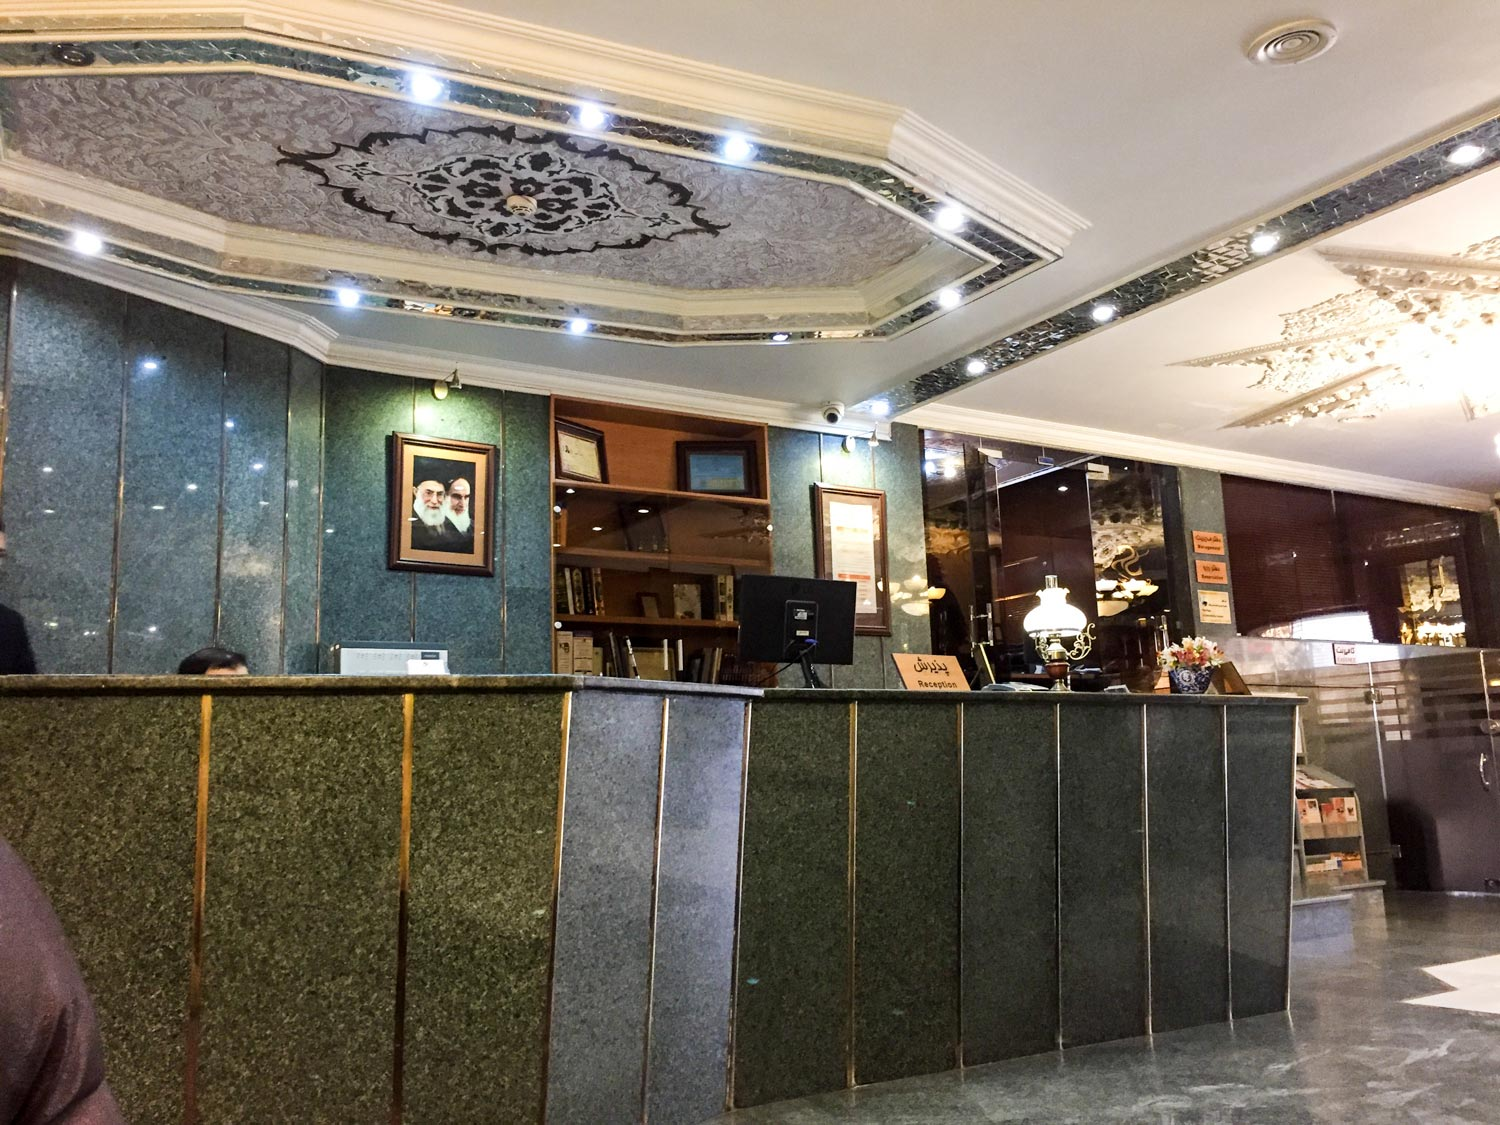 Setareh Hotel Isfahan - Reception area with lots of marble and decoration